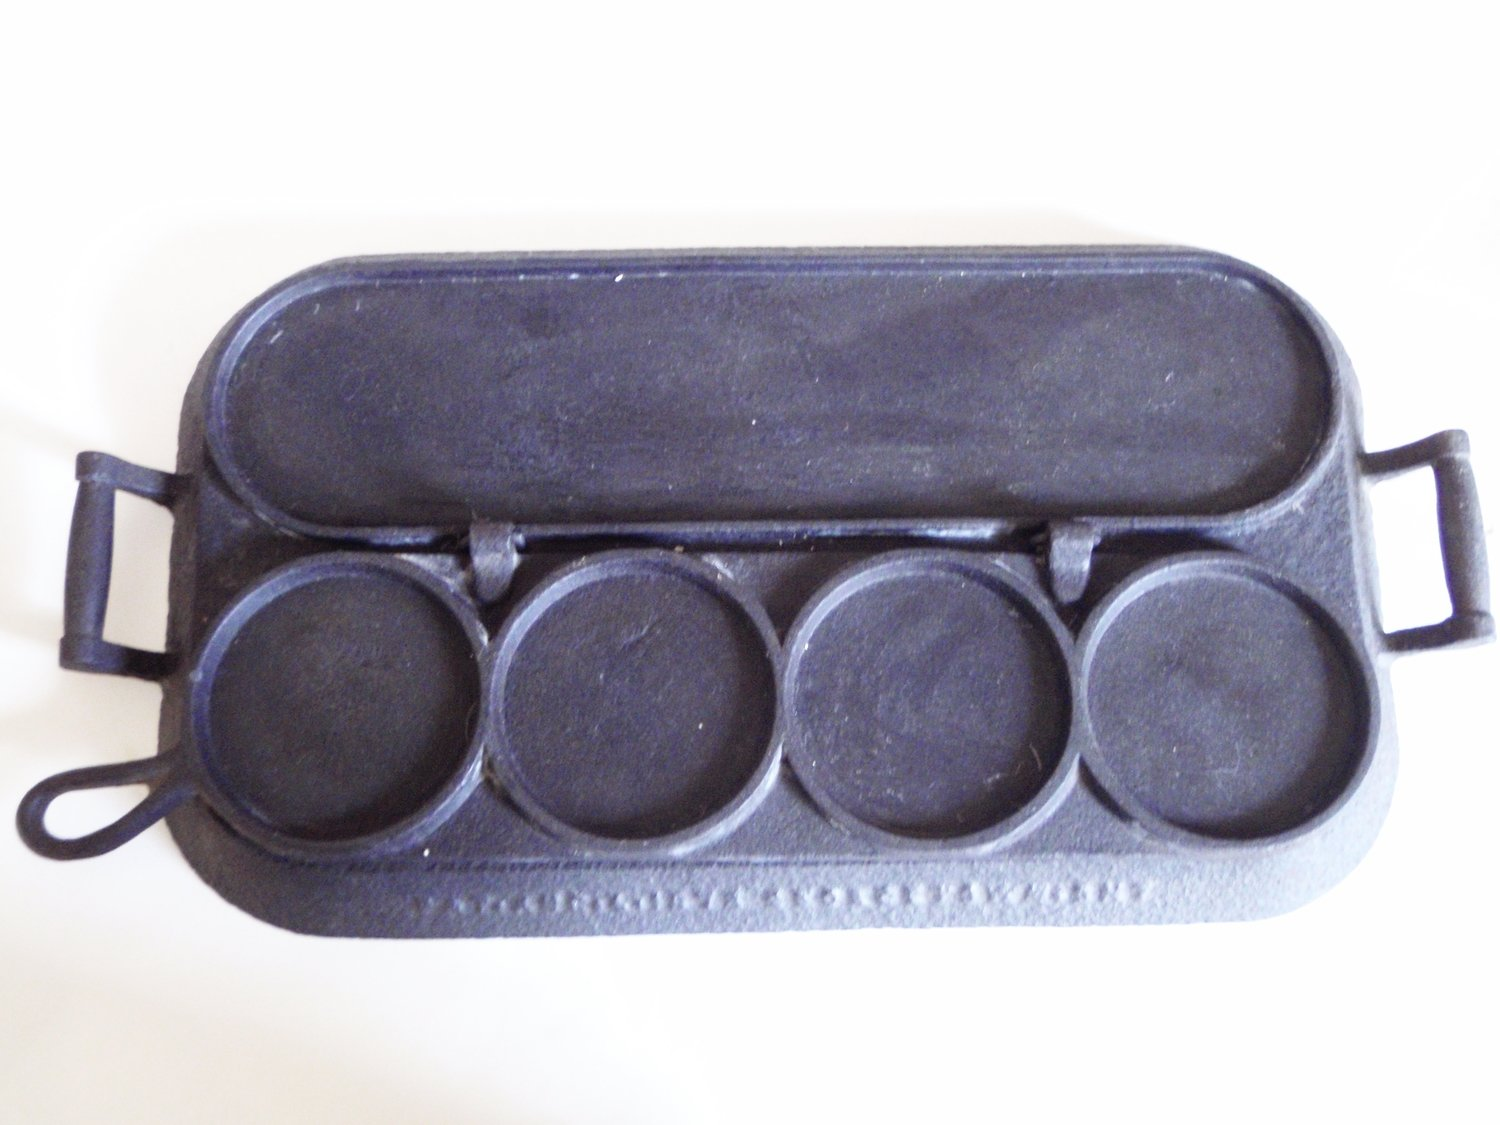 1873 Cast Iron Griddle Cakes Pancake Flap Jack Patented Griddle